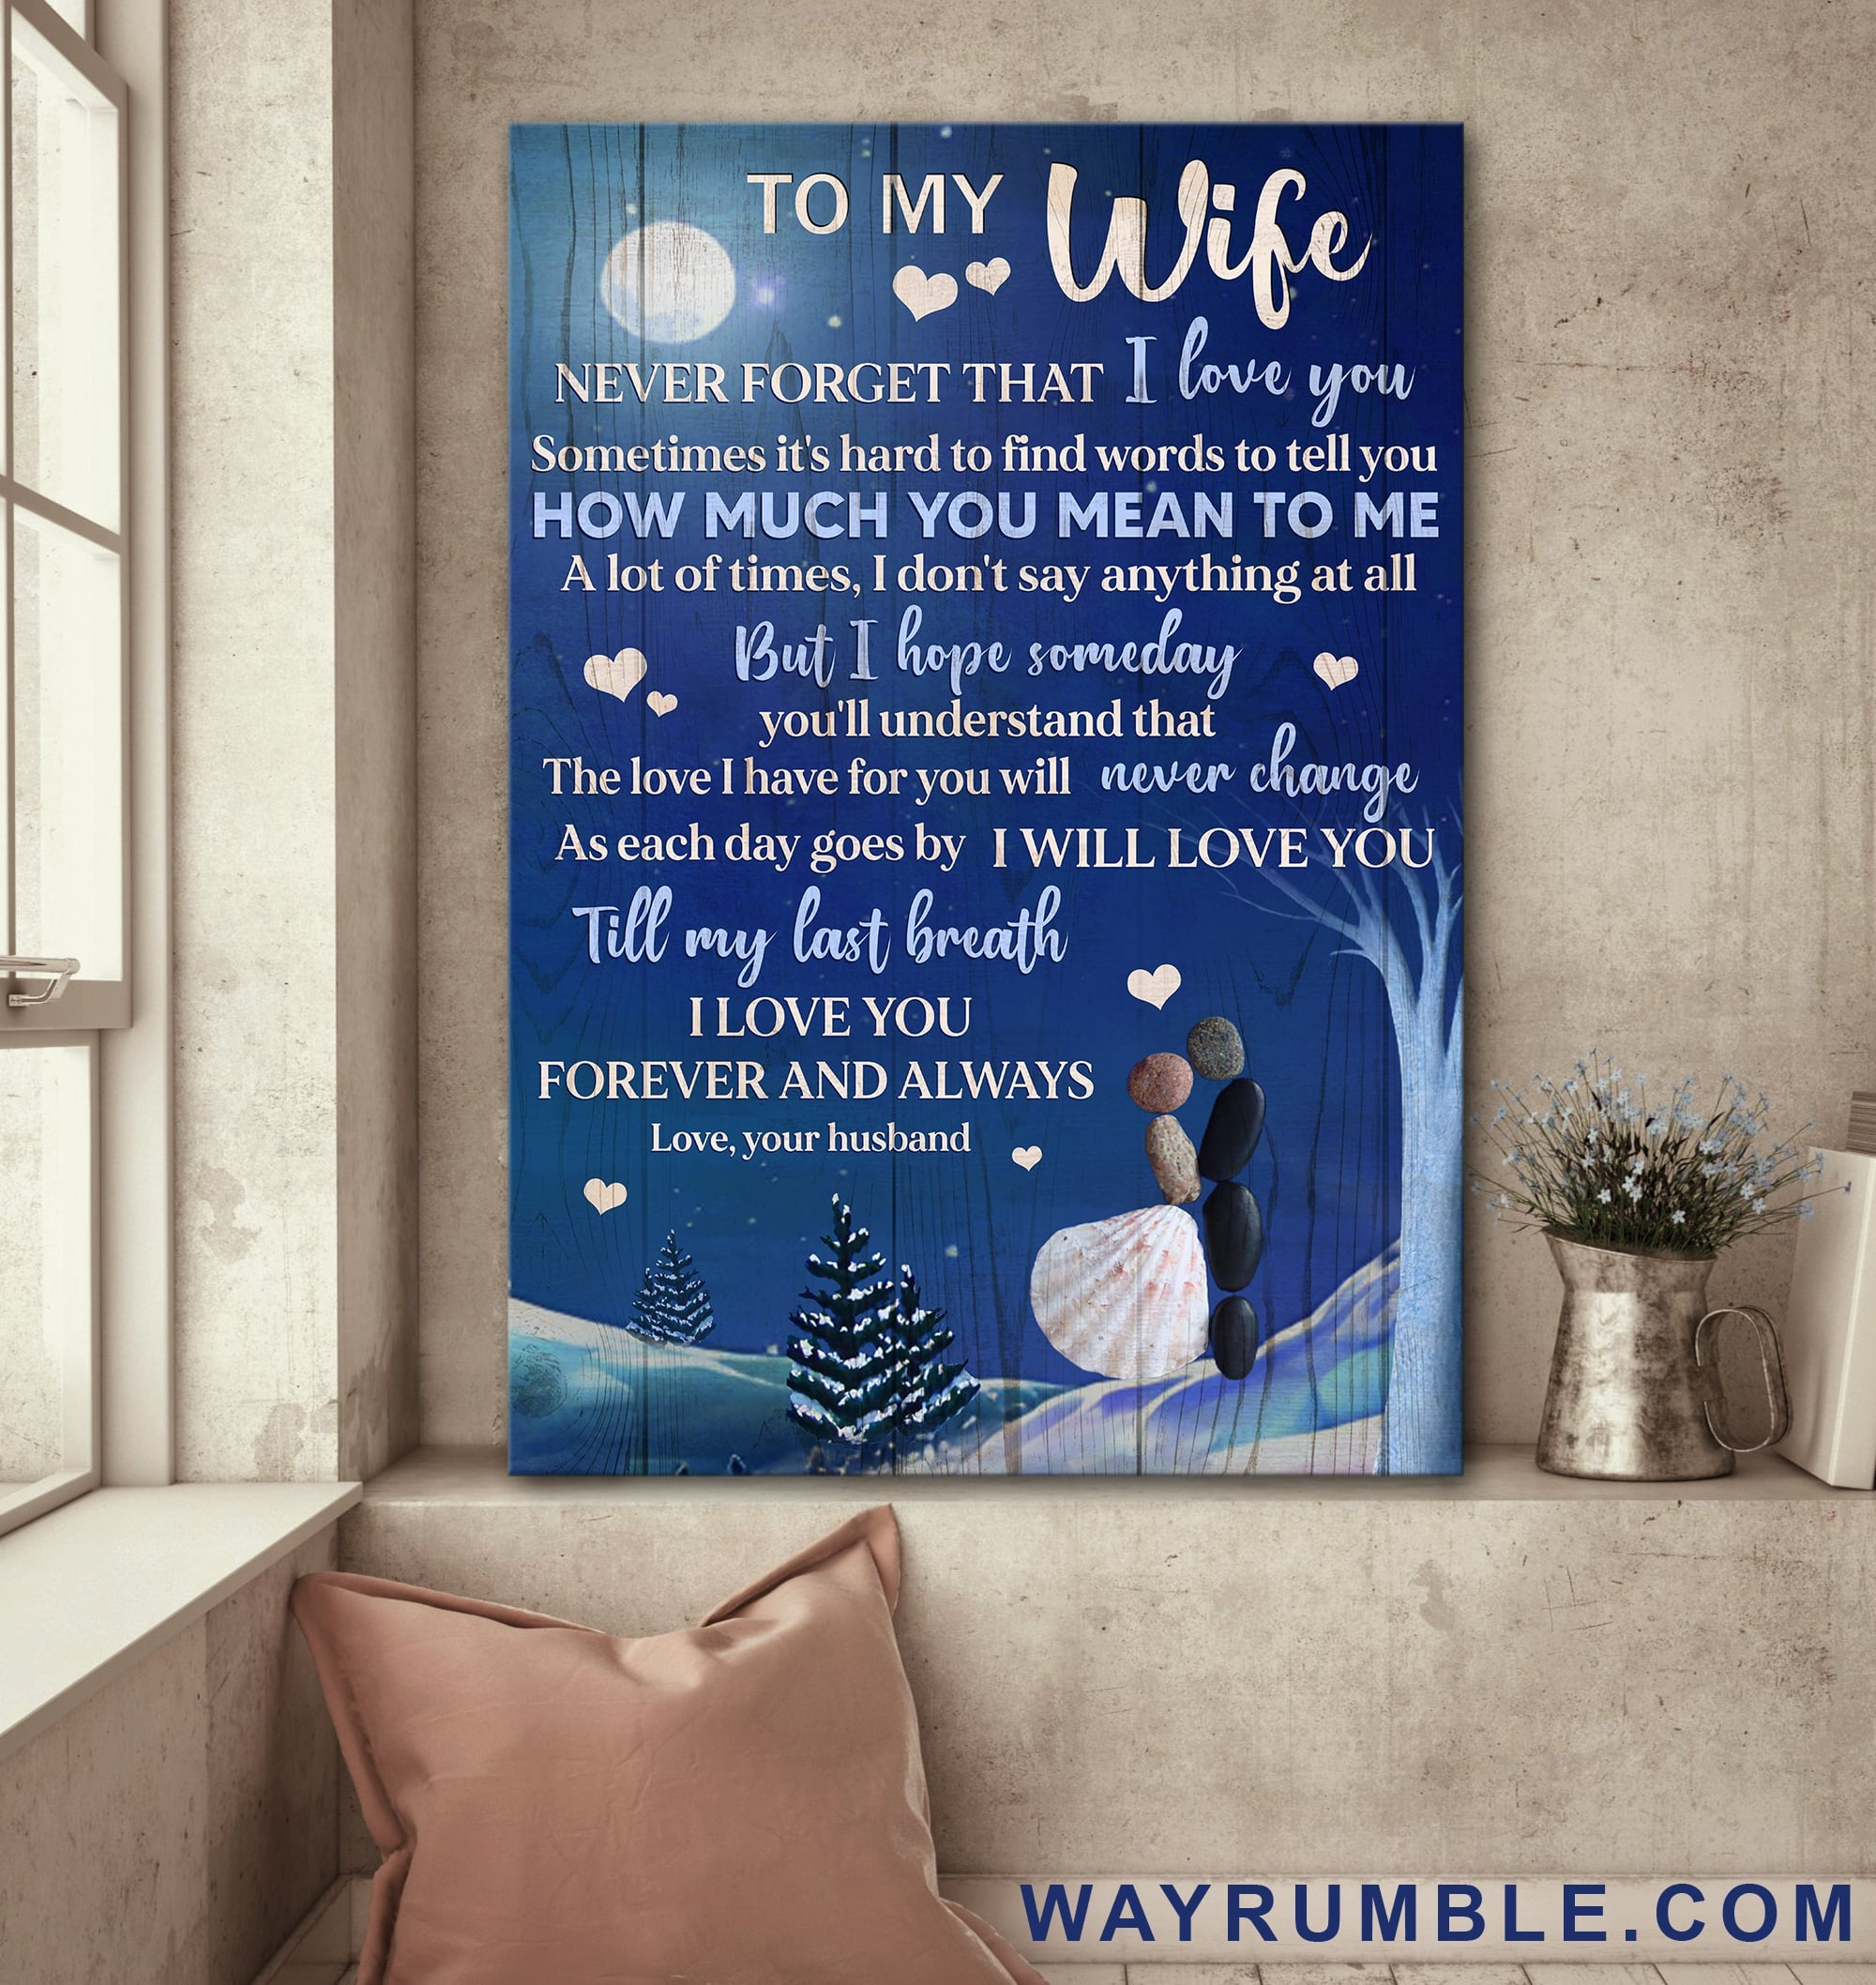 To my wife - Pebble couple under the moonlight - I love